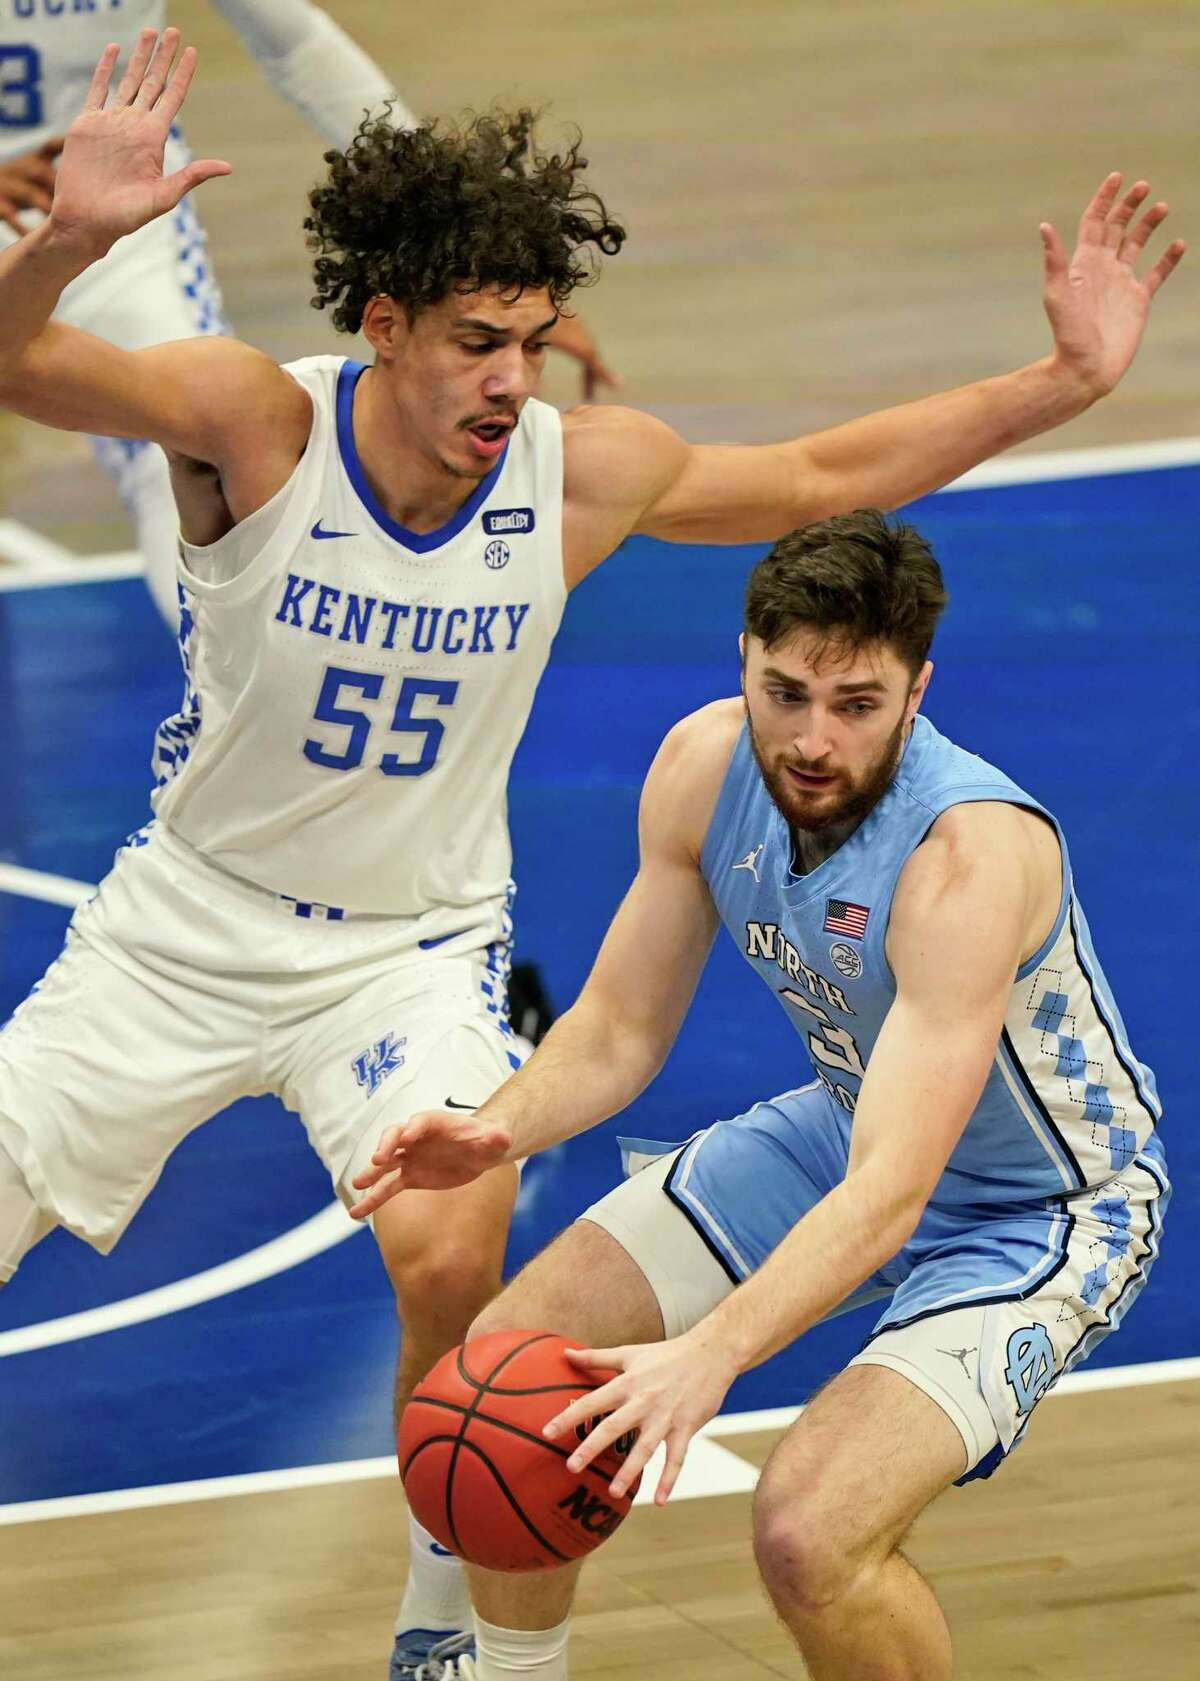 North Carolina's Andrew Platek (3) drives against Kentucky's Lance Ware (55) in the first half of an NCAA college basketball game, Saturday, Dec. 19, 2020, in Cleveland.